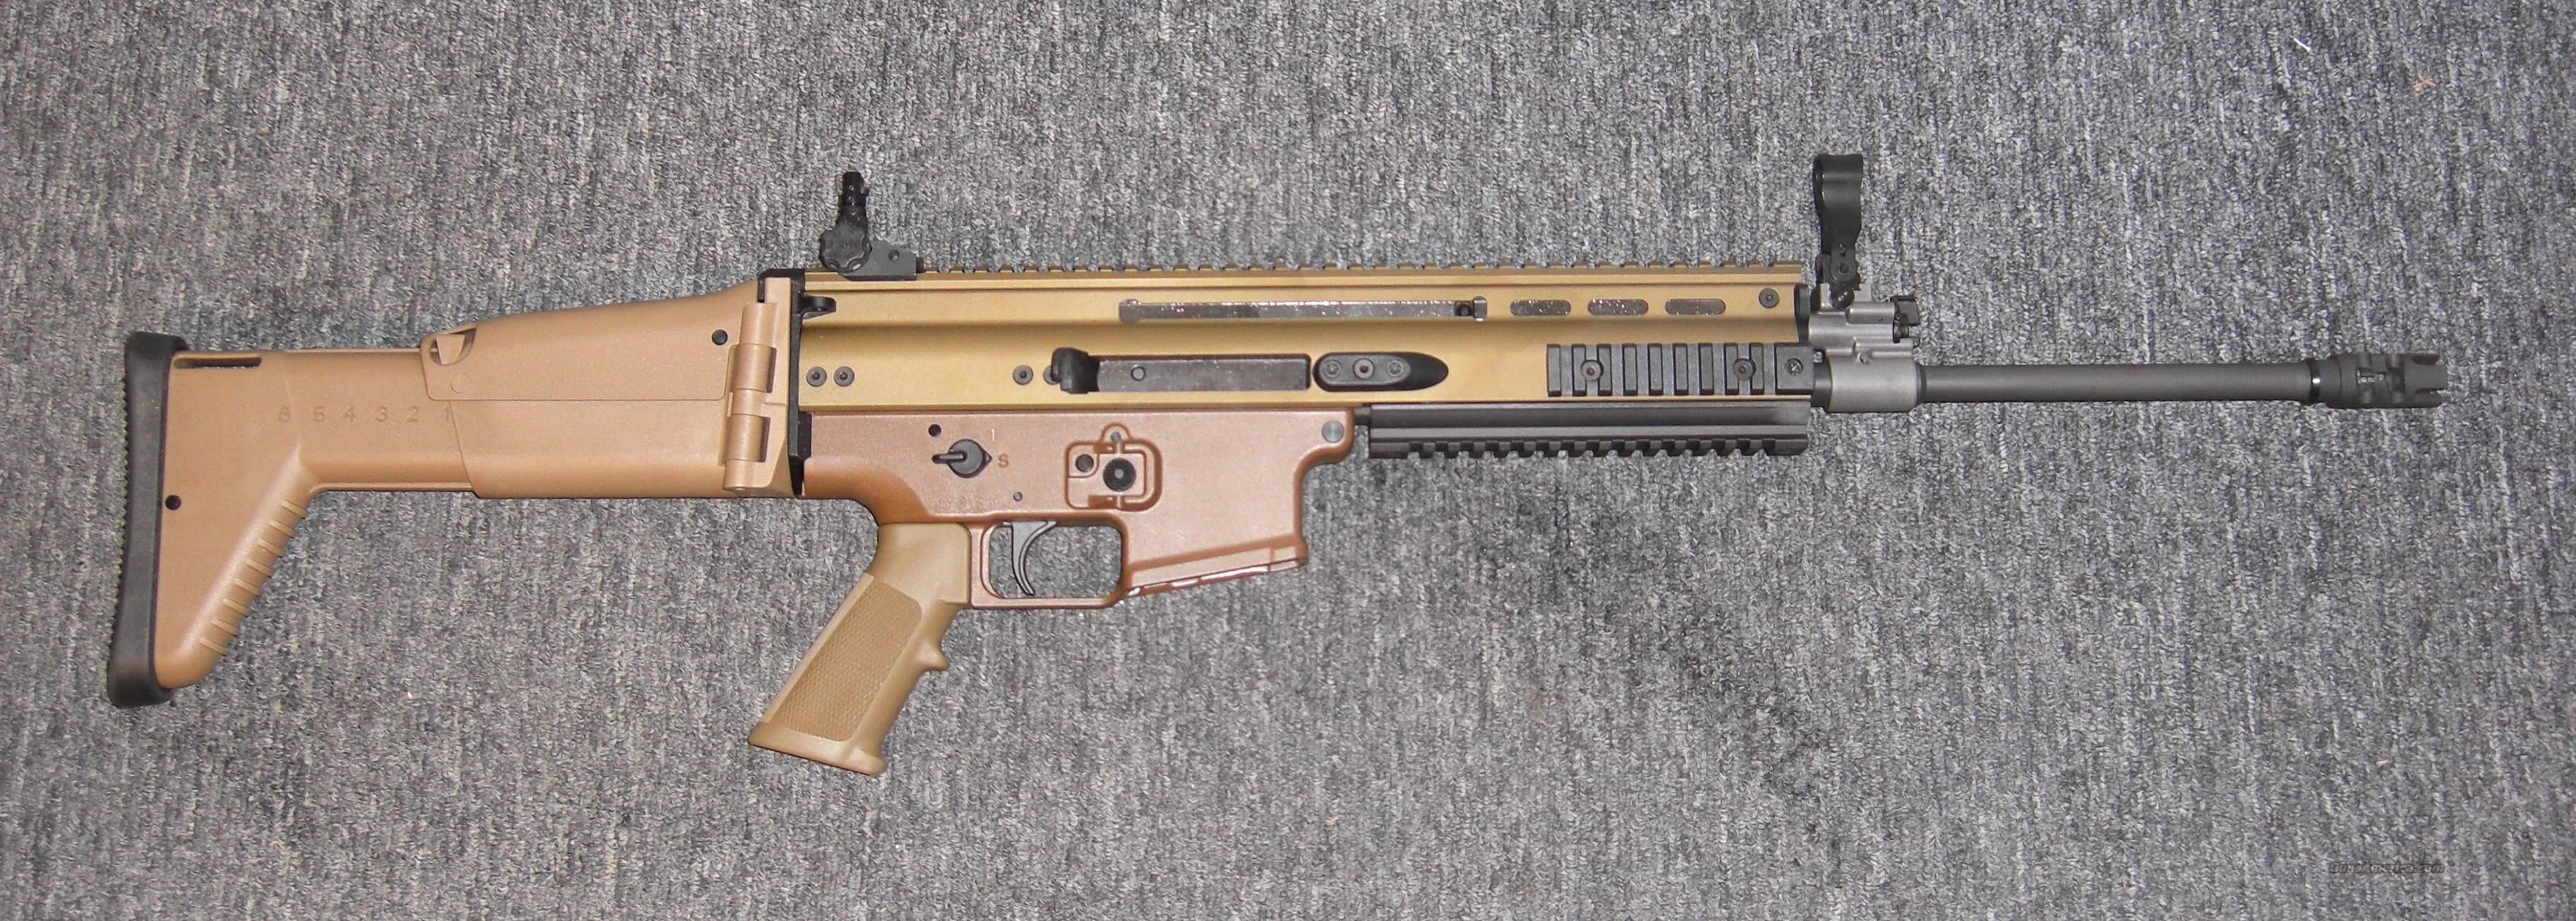 FN SCAR 16S /FDE finish  Guns > Rifles > FNH - Fabrique Nationale (FN) Rifles > Semi-auto > Other